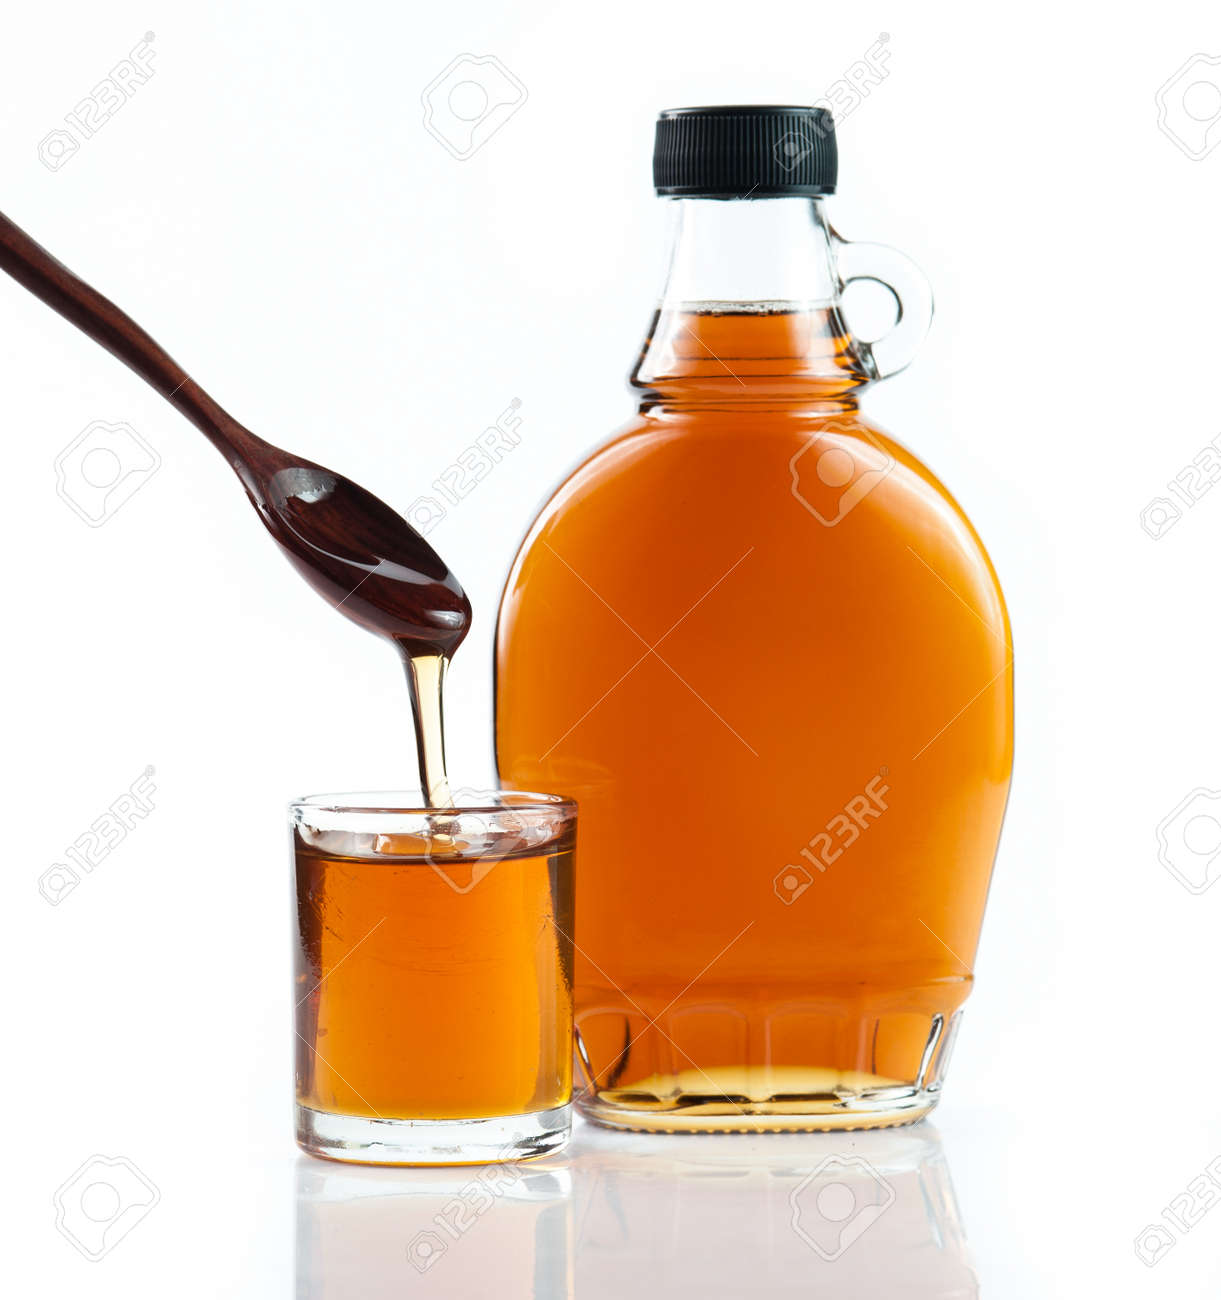 maple syrup in glass bottle on white background - 48852605